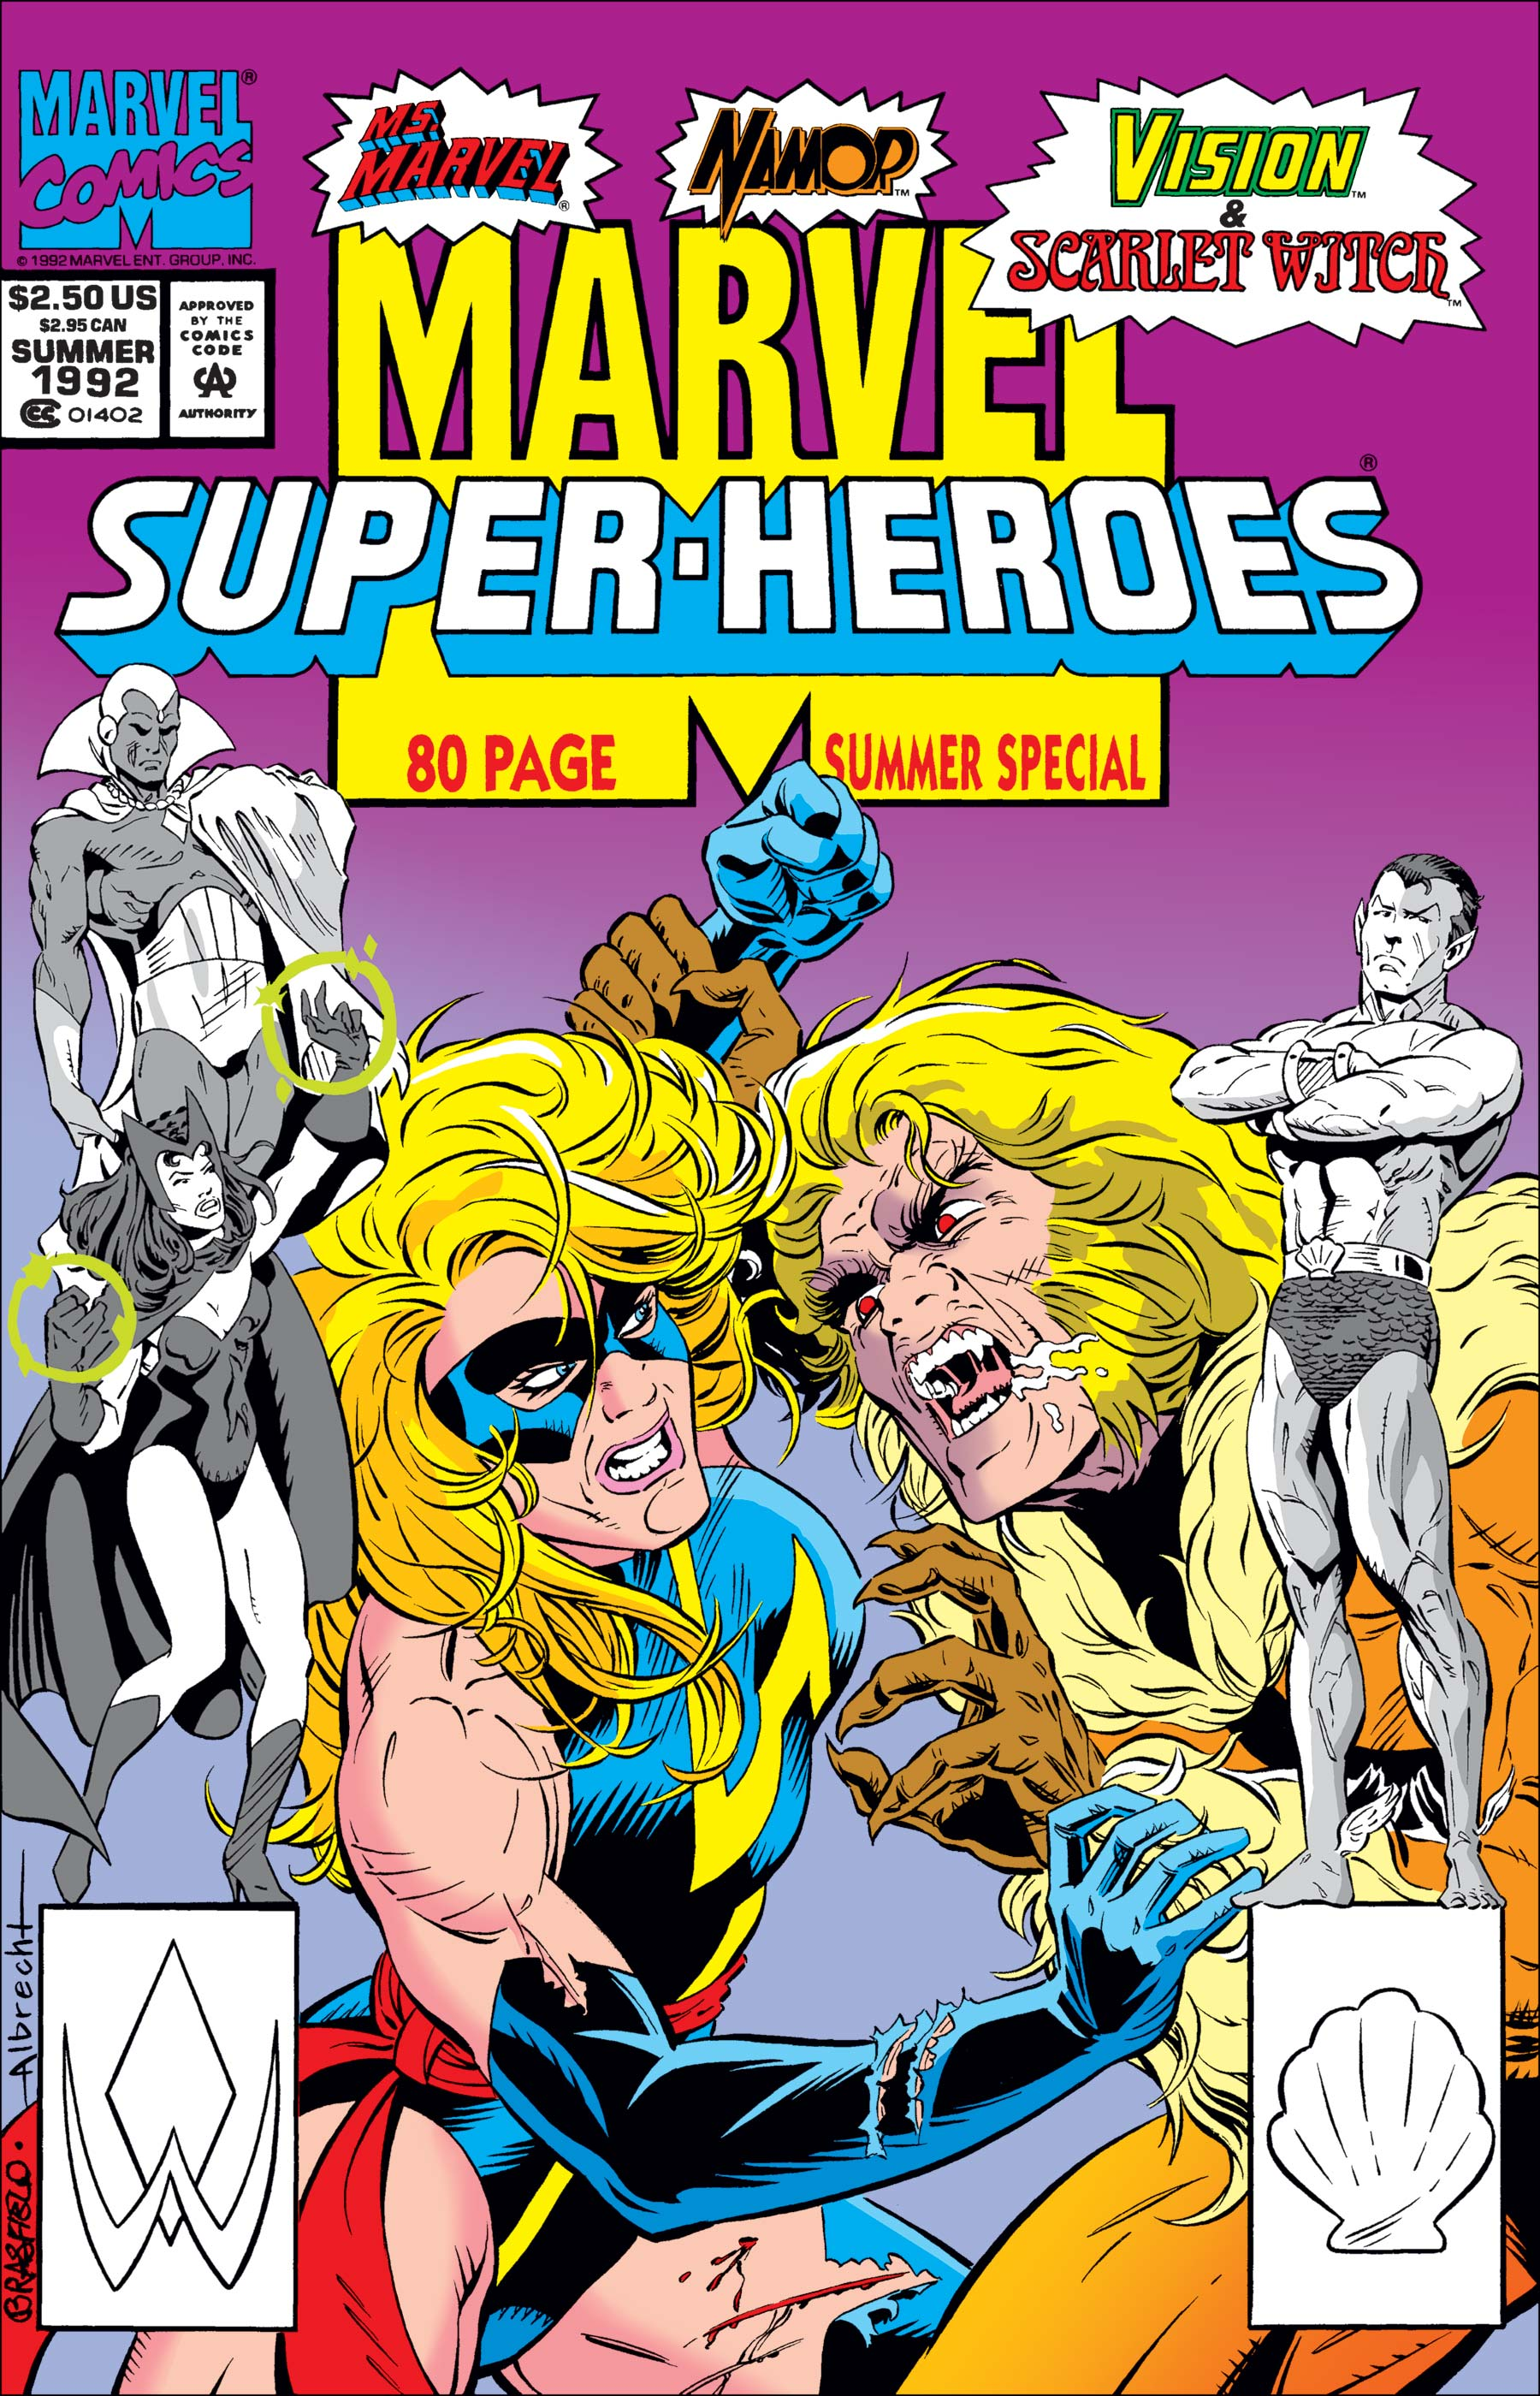 Marvel Super Heroes (1990) #10